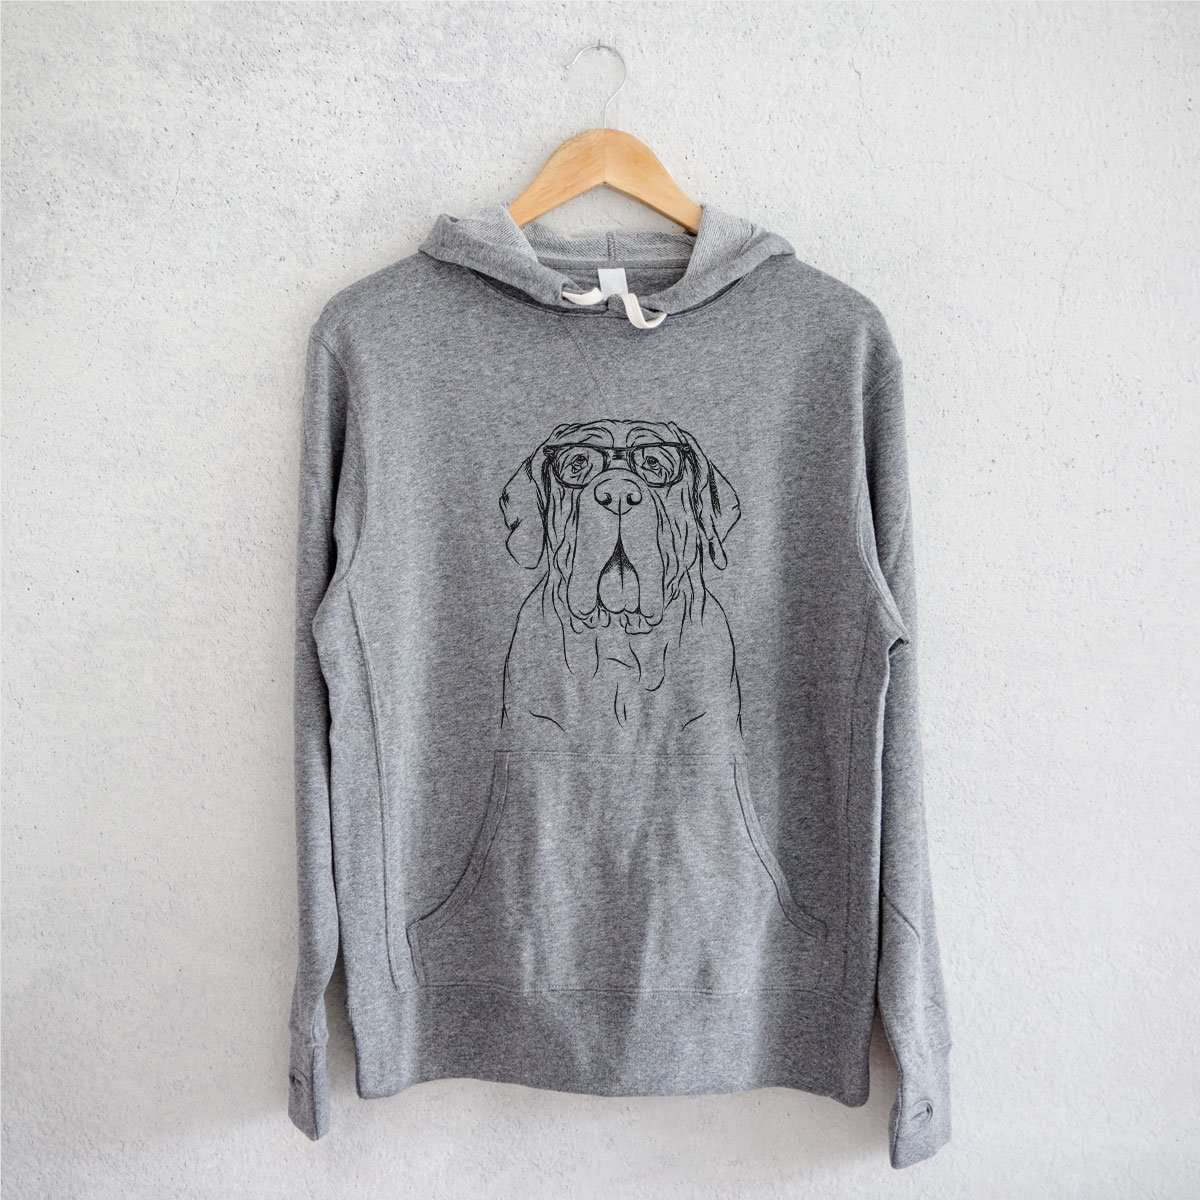 Dinah the Neapolitan Mastiff - Grey French Terry Hooded Sweatshirt